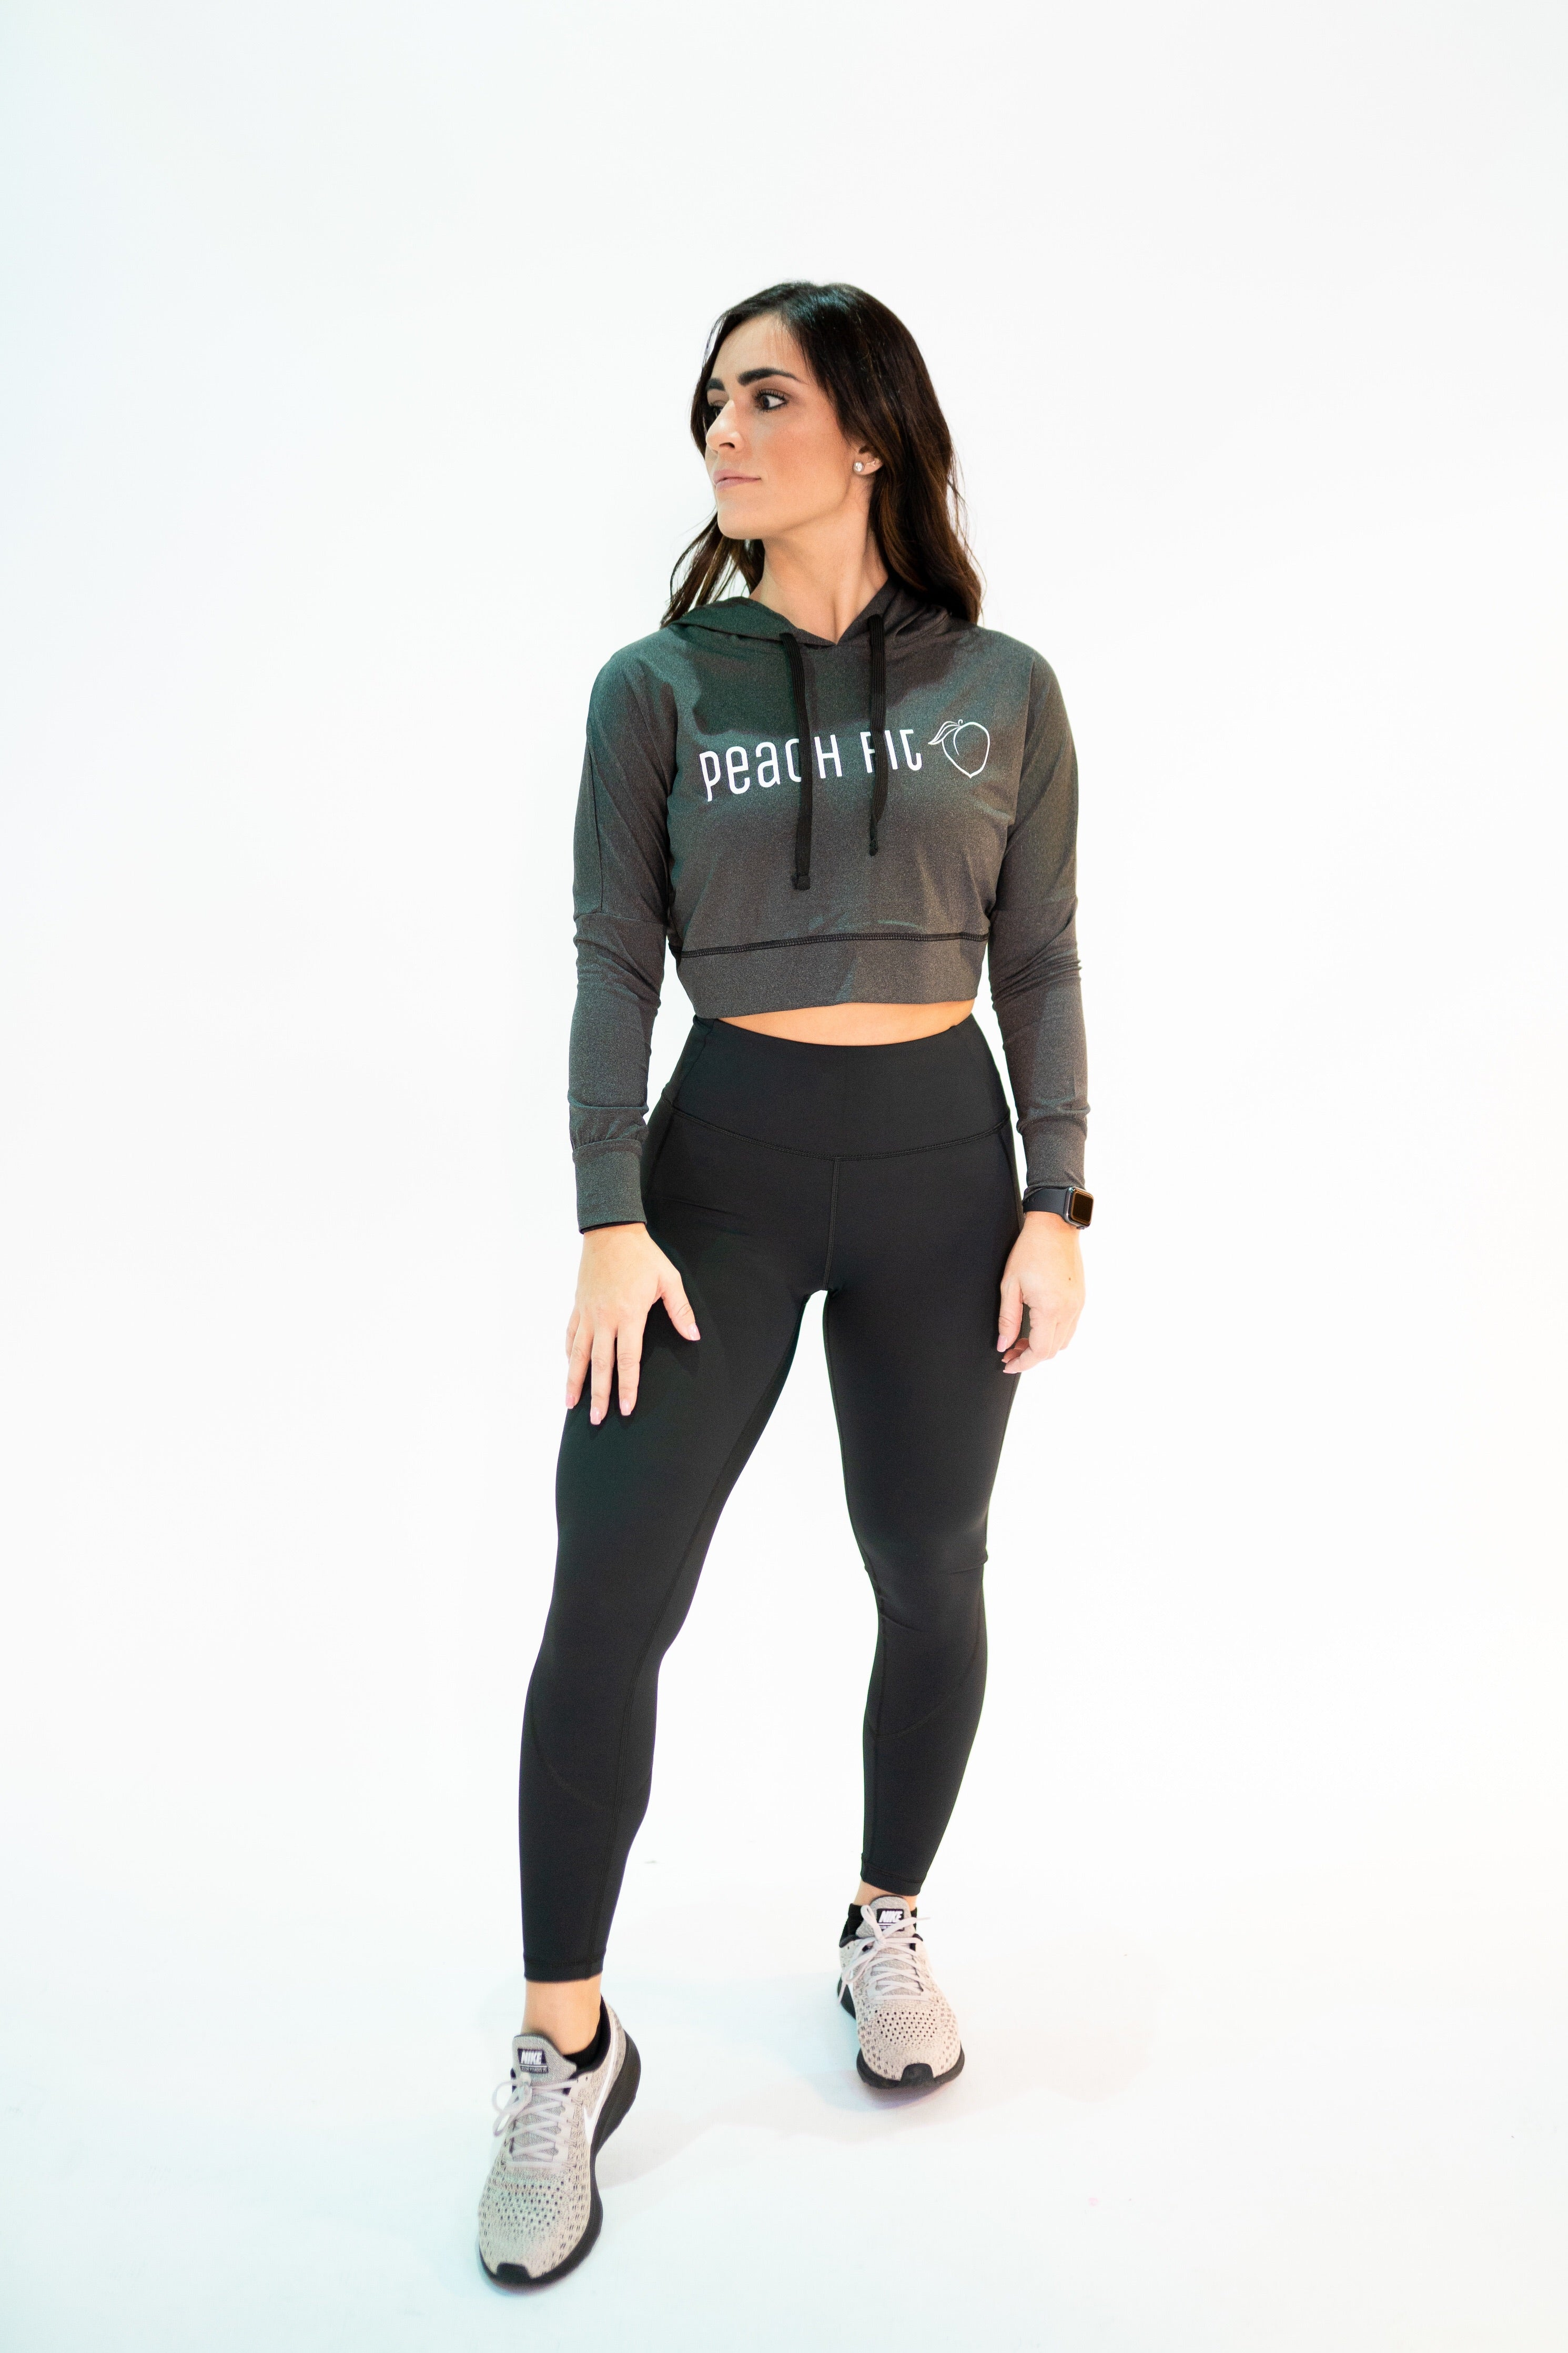 5c53c55eb6a669 Shrunken Charcoal Workout Crop Top Hoodie – Peach Fit Clothing